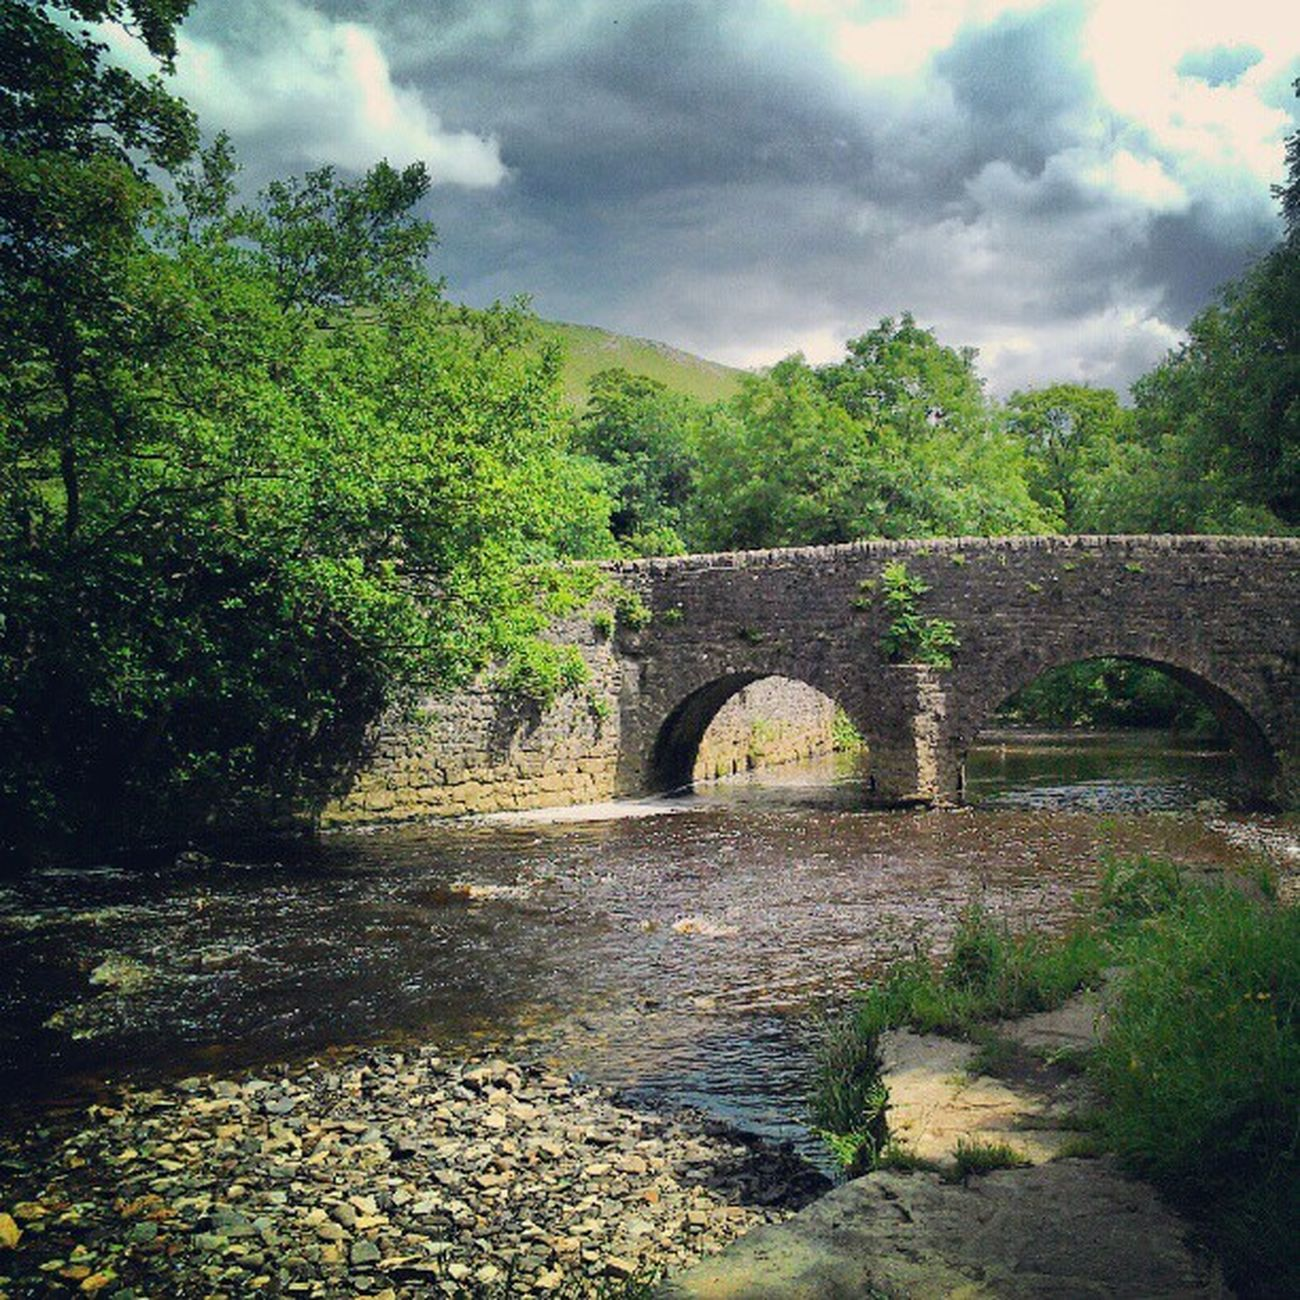 Clouds River Summer Me Sun Beautiful Happy Sky Love Bridge Trees Stones Girl Photooftheday Picoftheday Hills Nofilter Follow Instamood Bestoftheday IGDaily Instagramers Picstitch  Tweegram Instagood Instagramhub Webstagram Instadaily Instatags Instagramtagsdotcom